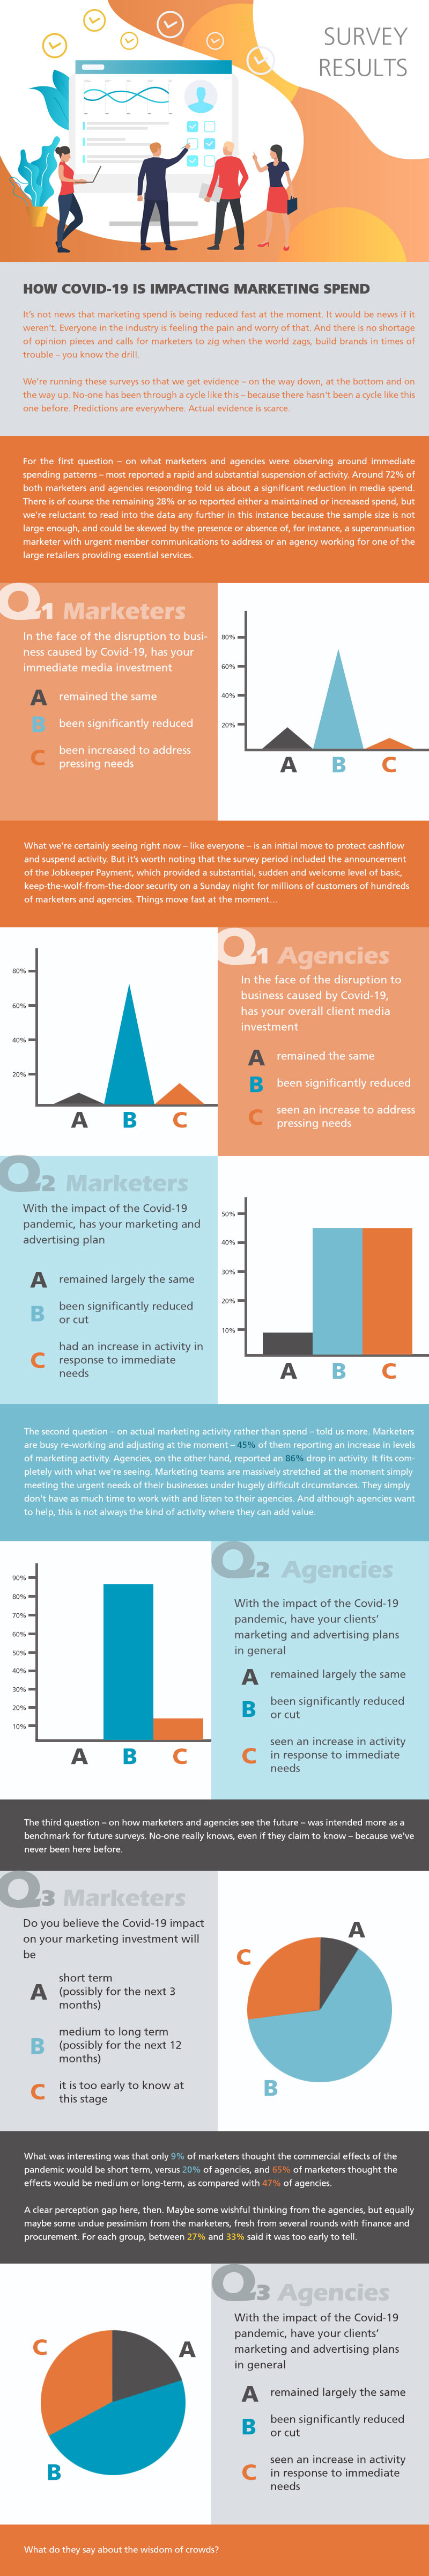 survey results - HOW COVID-19 IS IMPACTING MARKETING SPEND - infographics